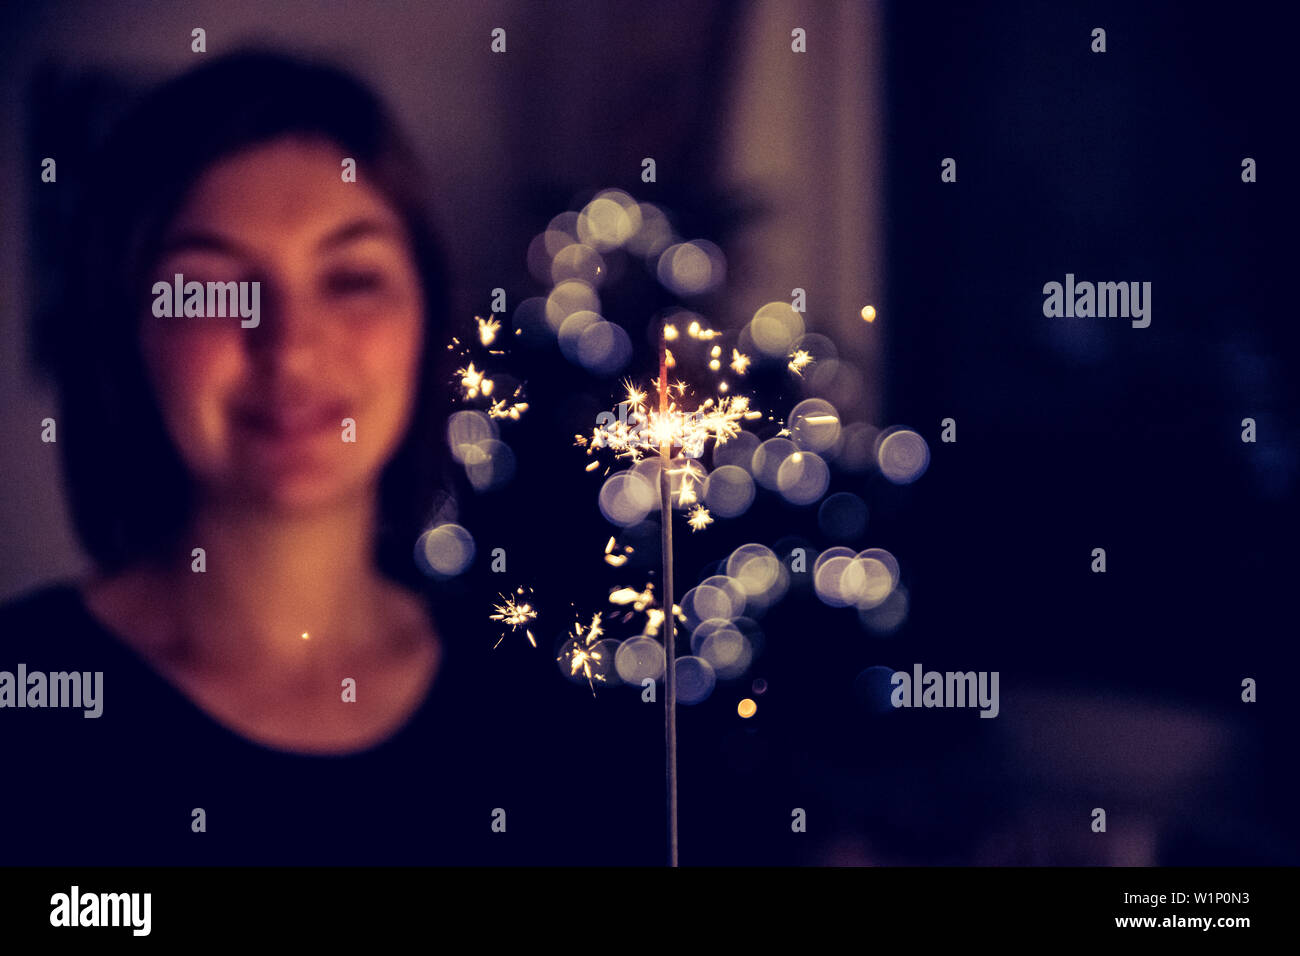 Smiling girl is holding a sparkler in her hand, indoor, lights in background - Stock Image